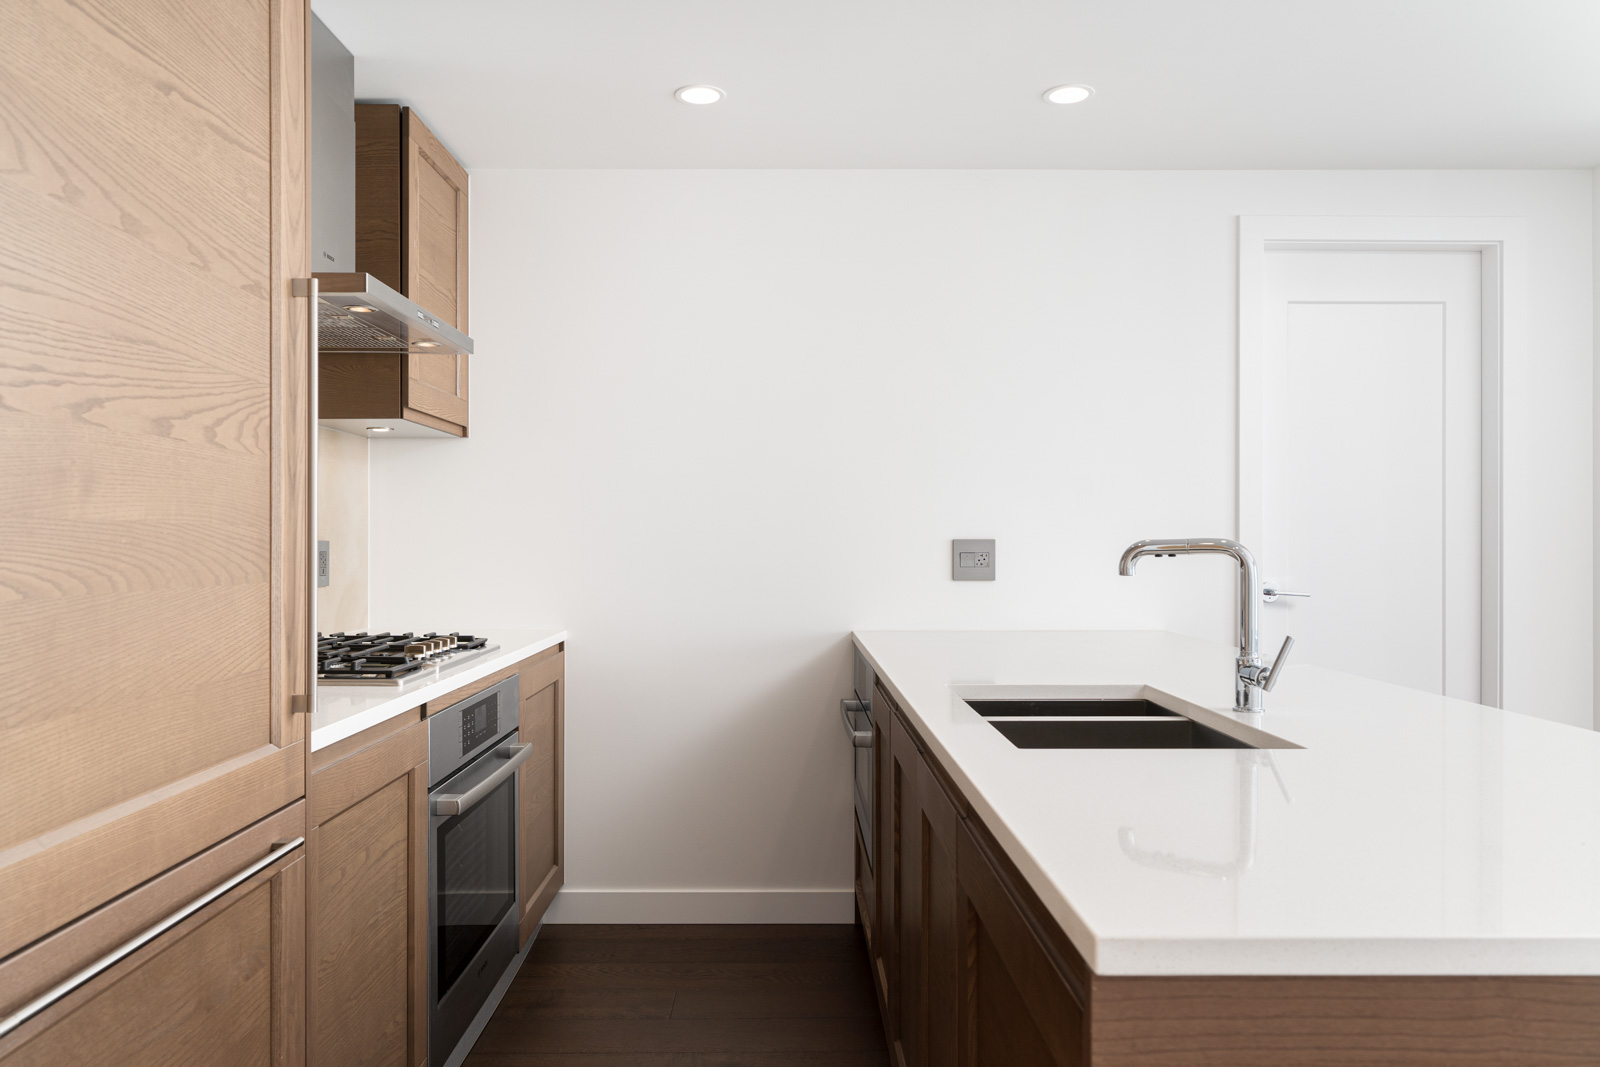 new kitchen by Birds Nest Properties at Ivy at the Park by Wall Financial at UBC neighborhood in Vancouver